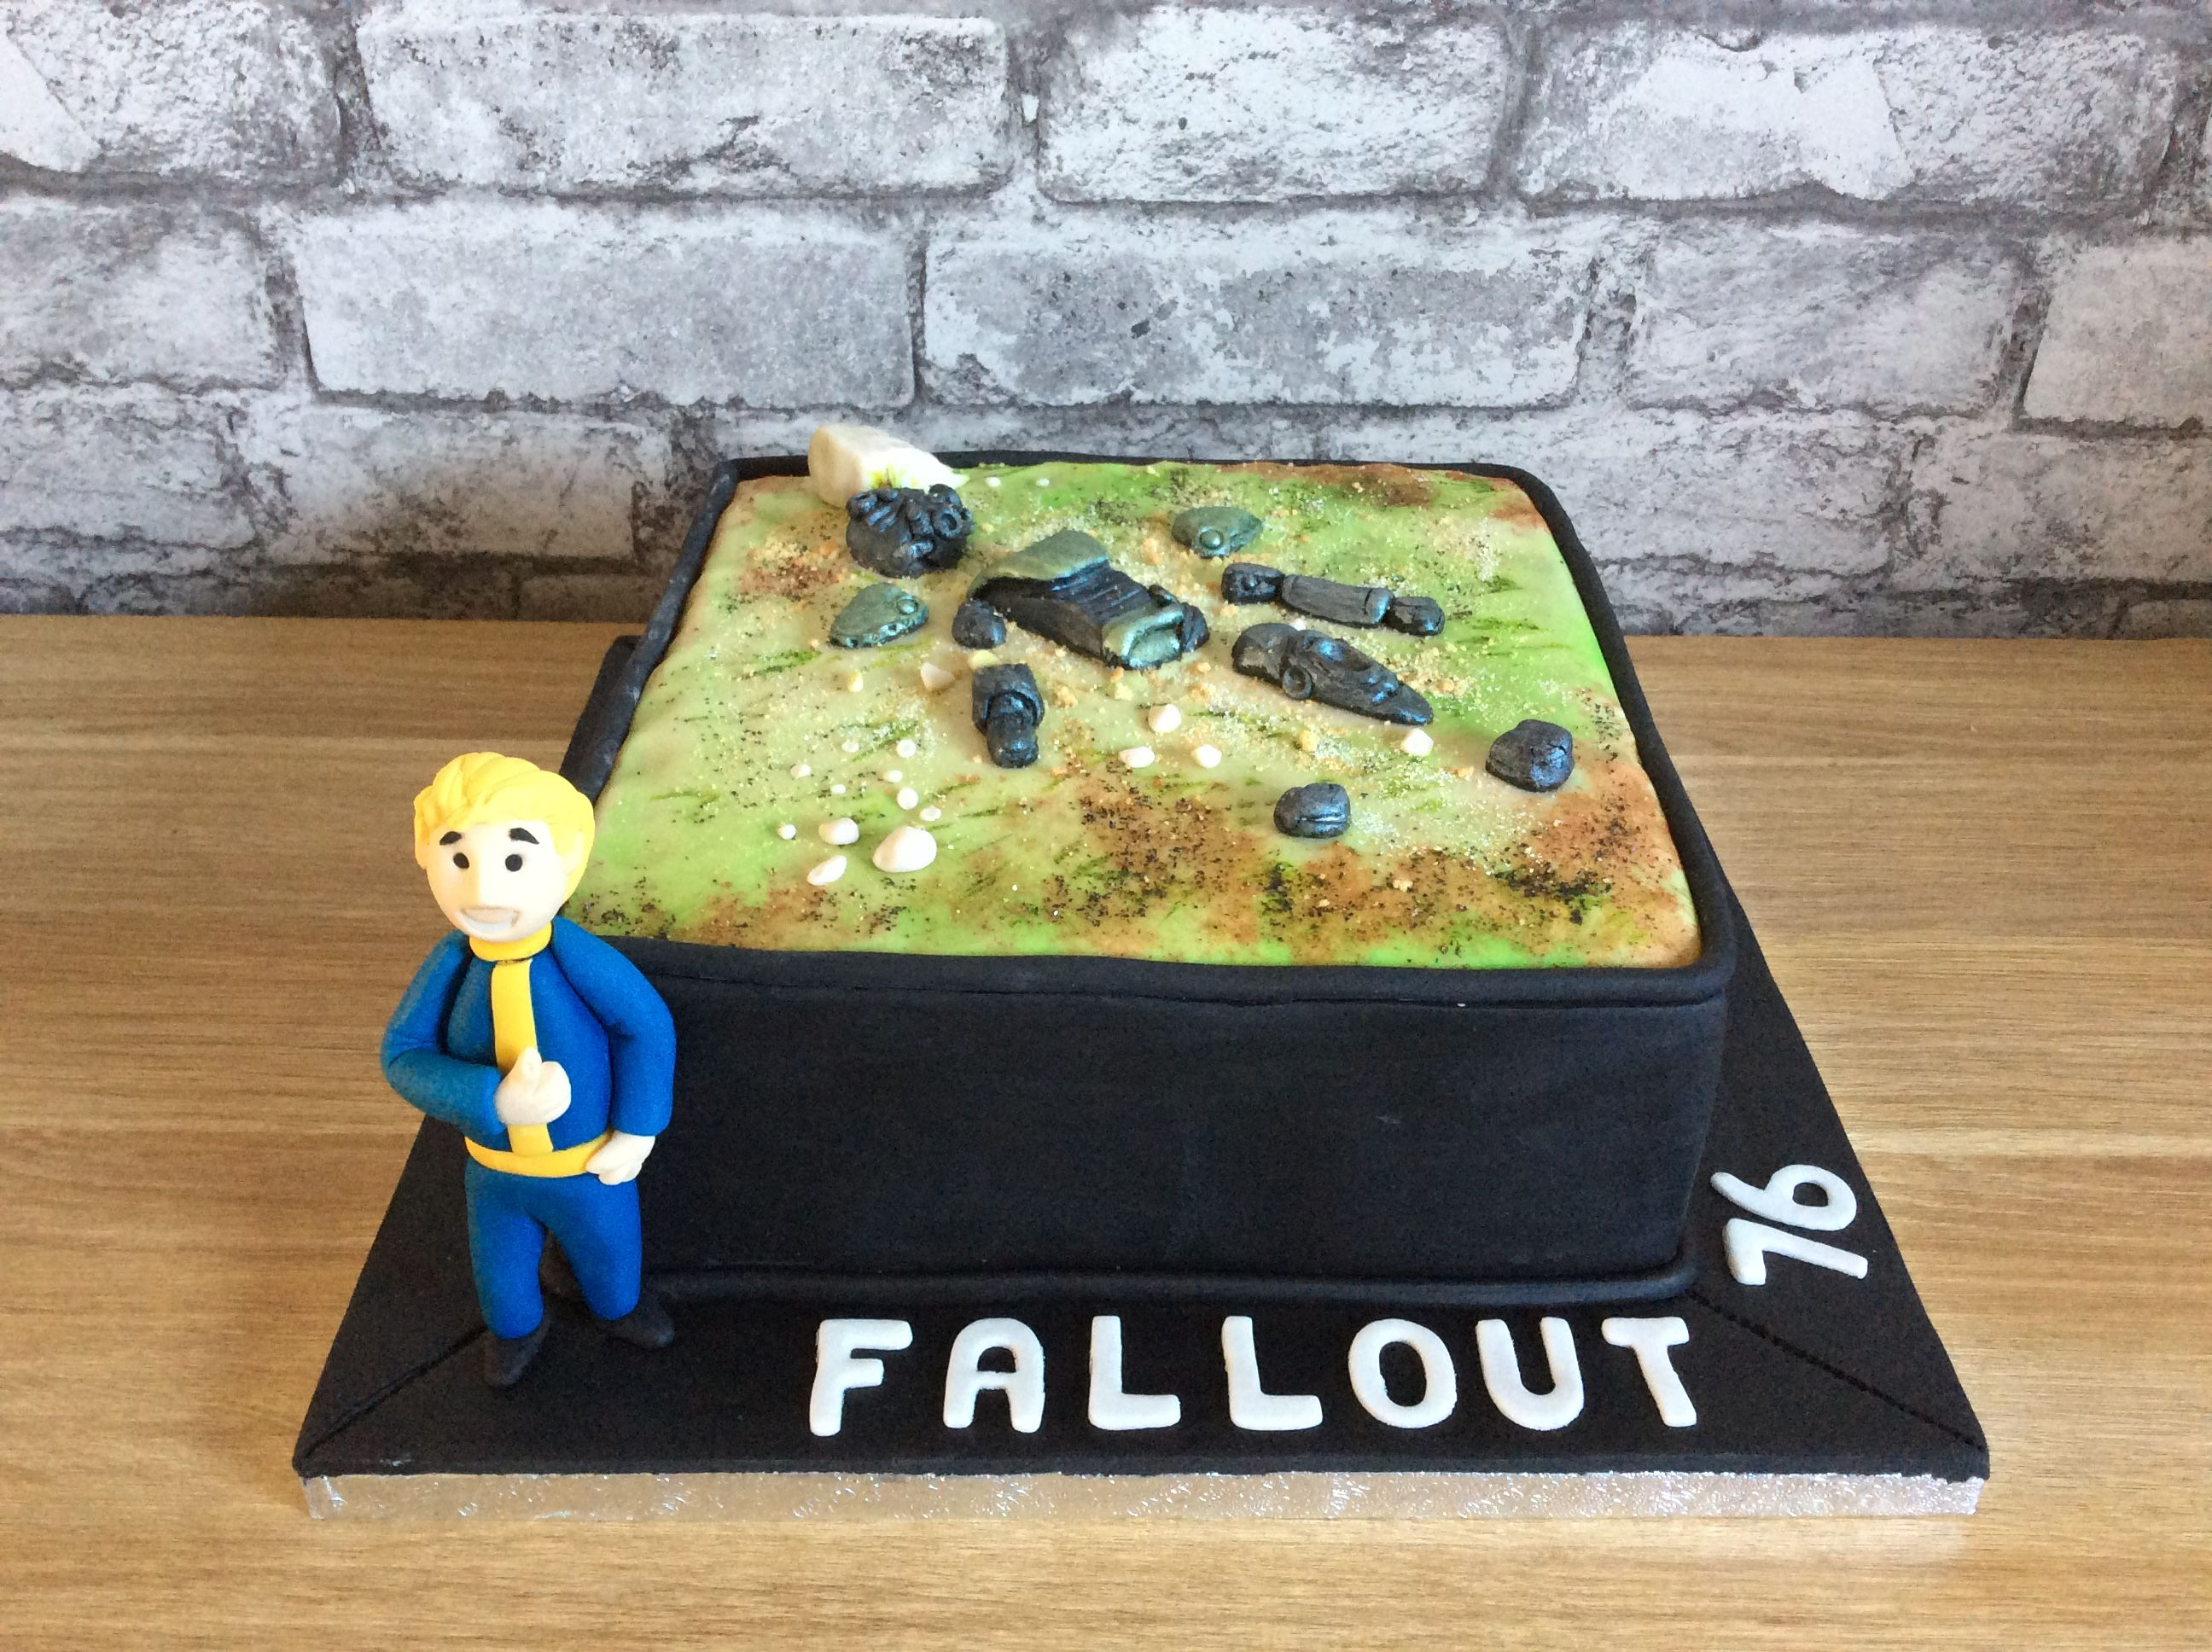 Fallout 76 themed birthday cake x | Quick Saves | Themed